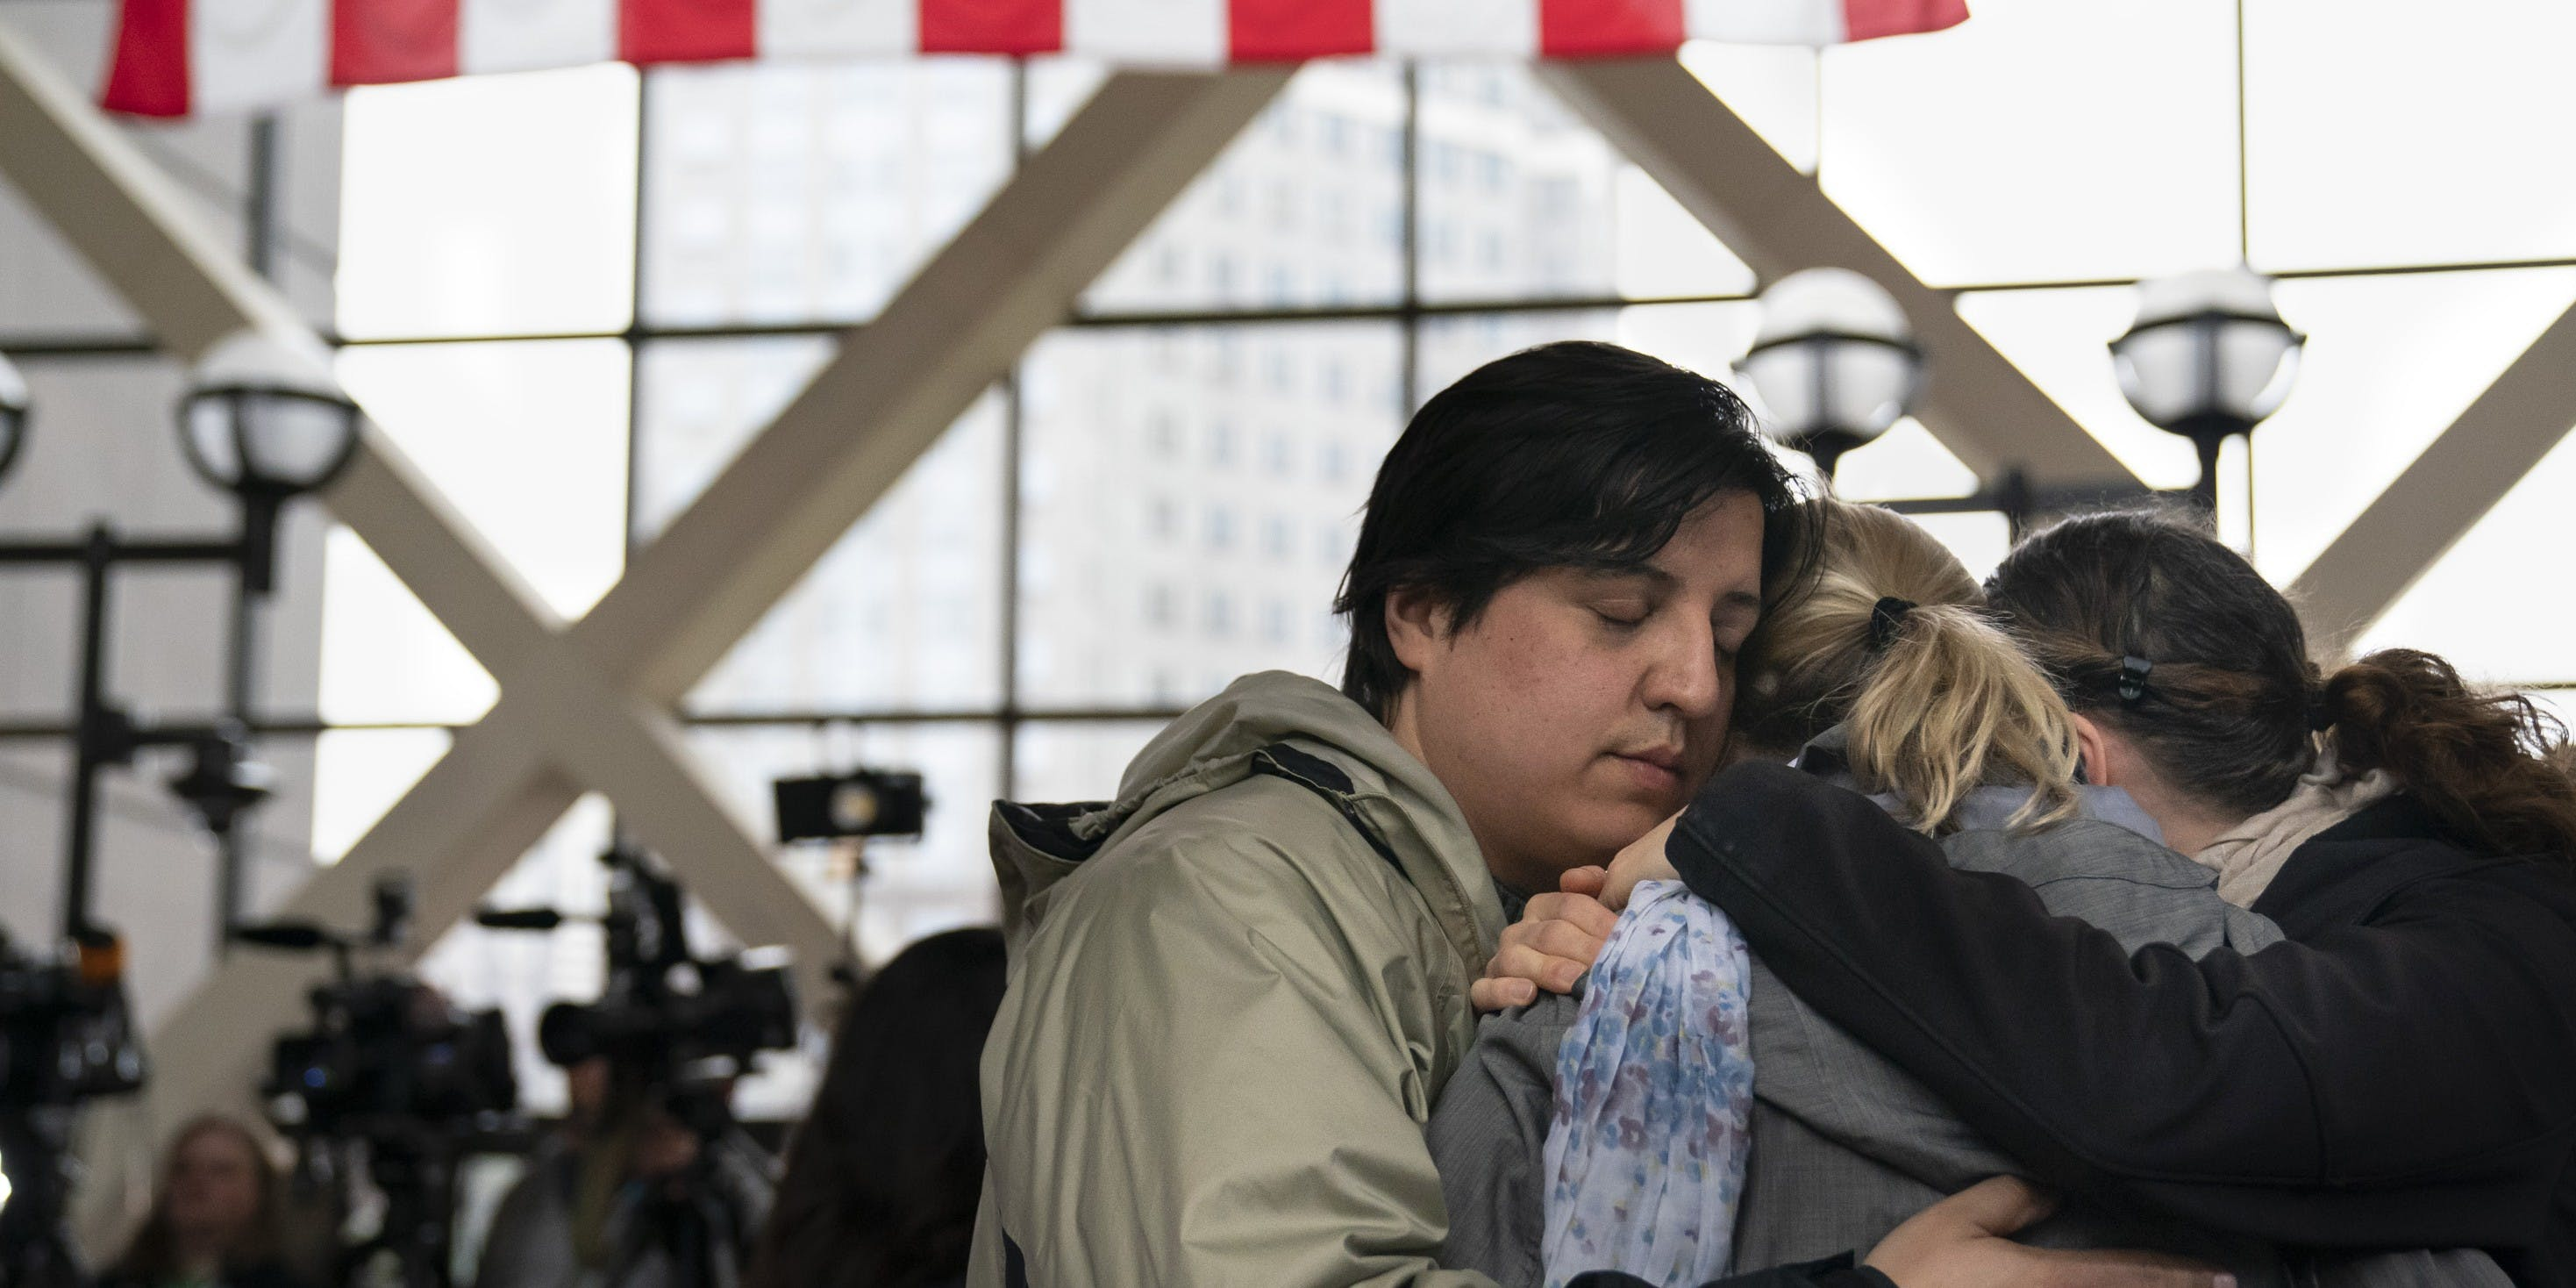 MINNEAPOLIS, MN - APRIL 30: Ryan Masterson and his wife Jenelle Masterson, right, hugged Sarah Kuhnen after former Minneapolis police officer Mohamed Noor was found guilty of third-degree murder and second-degree manslaughter in the shooting death of Justine Ruszczyk Damond in Minneapolis, Minn., on Tuesday, April 30, 2019. They are all neighbors and friends of Justine and members of Justice for Justine. (Photo by Renee Jones Schneider/Star Tribune via Getty Images)